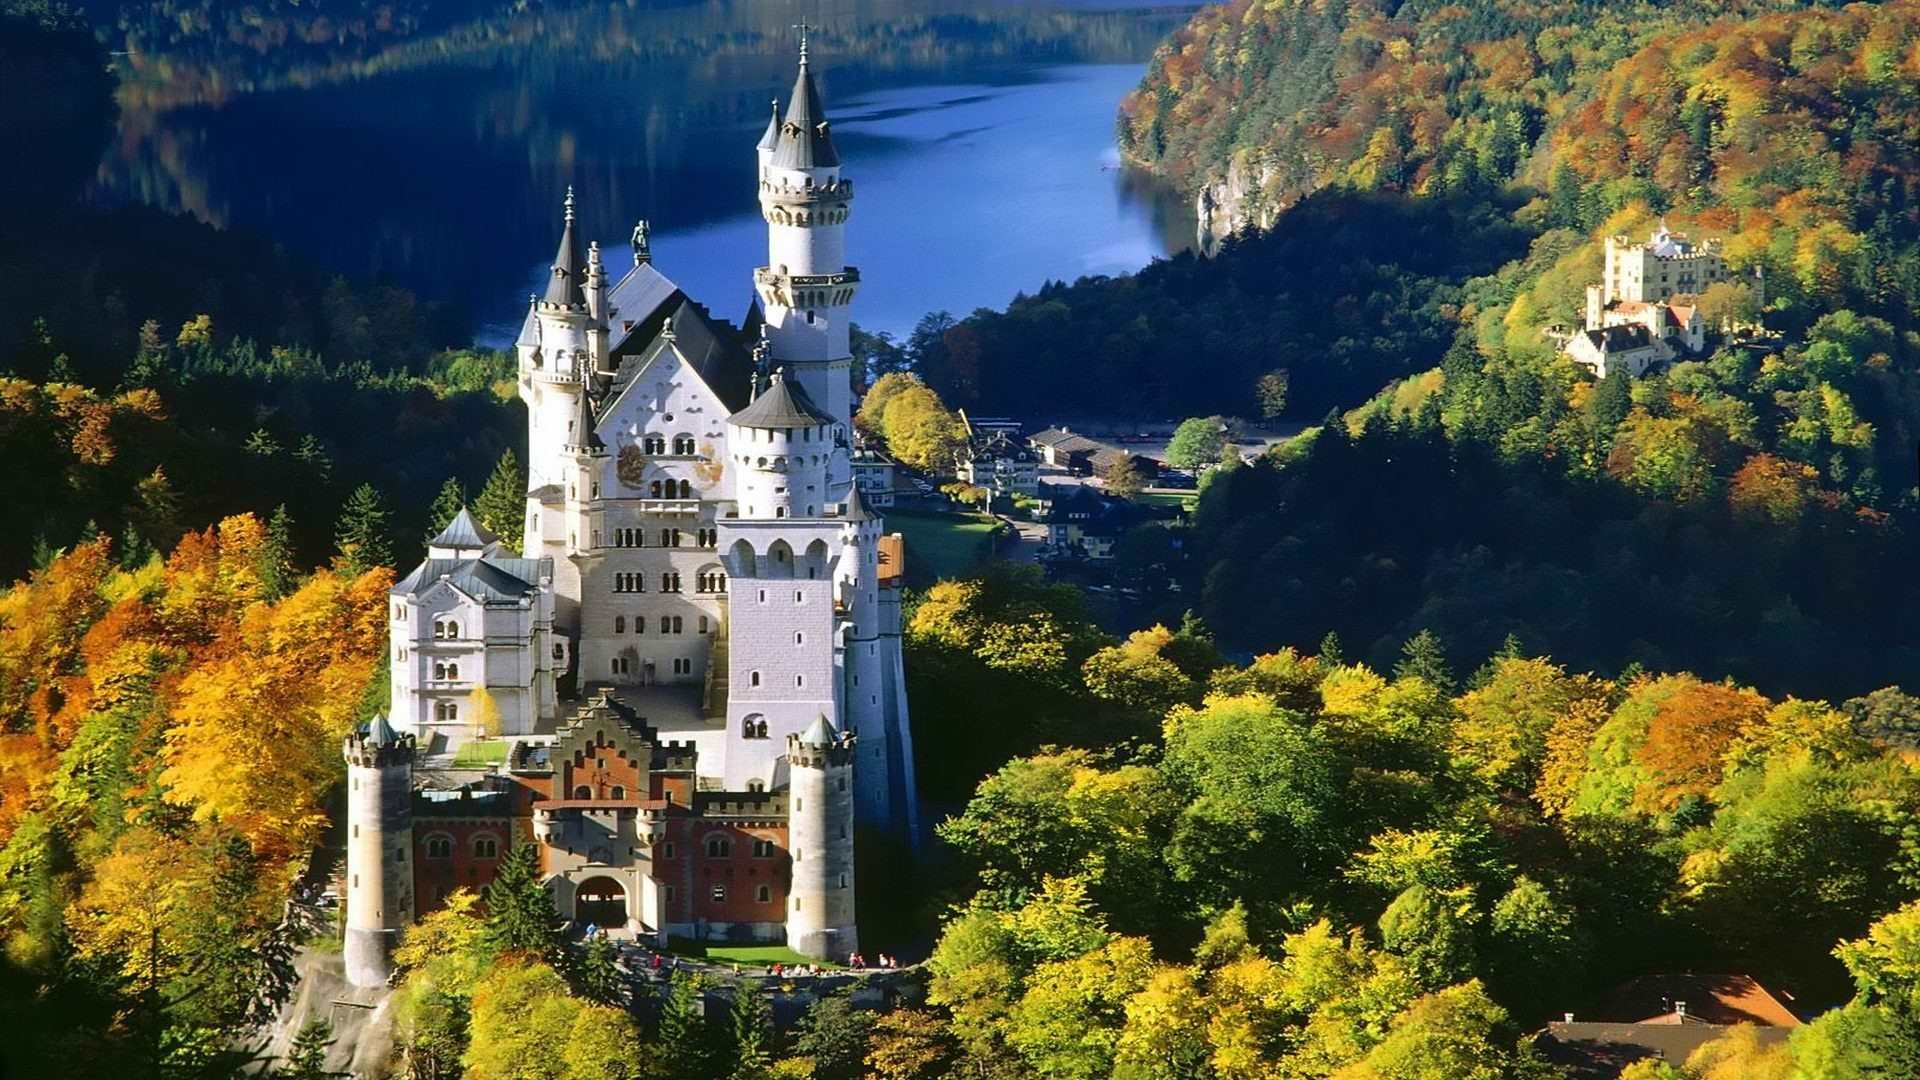 wallpapers category of hd wallpapers neuschwanstein castle 1920x1080